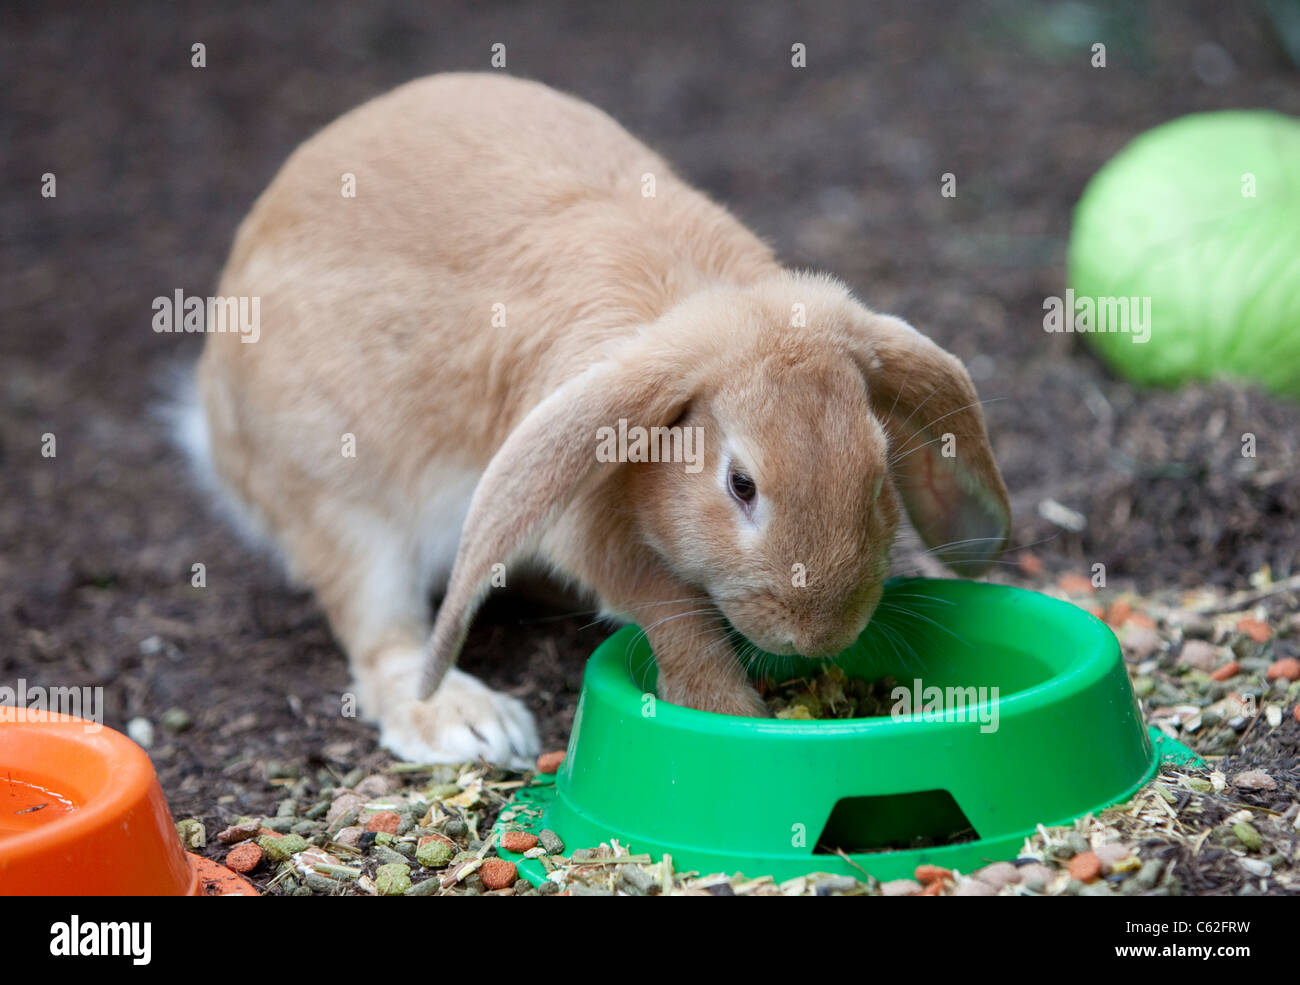 a-giant-lop-eared-rabbit-eating-food-fro